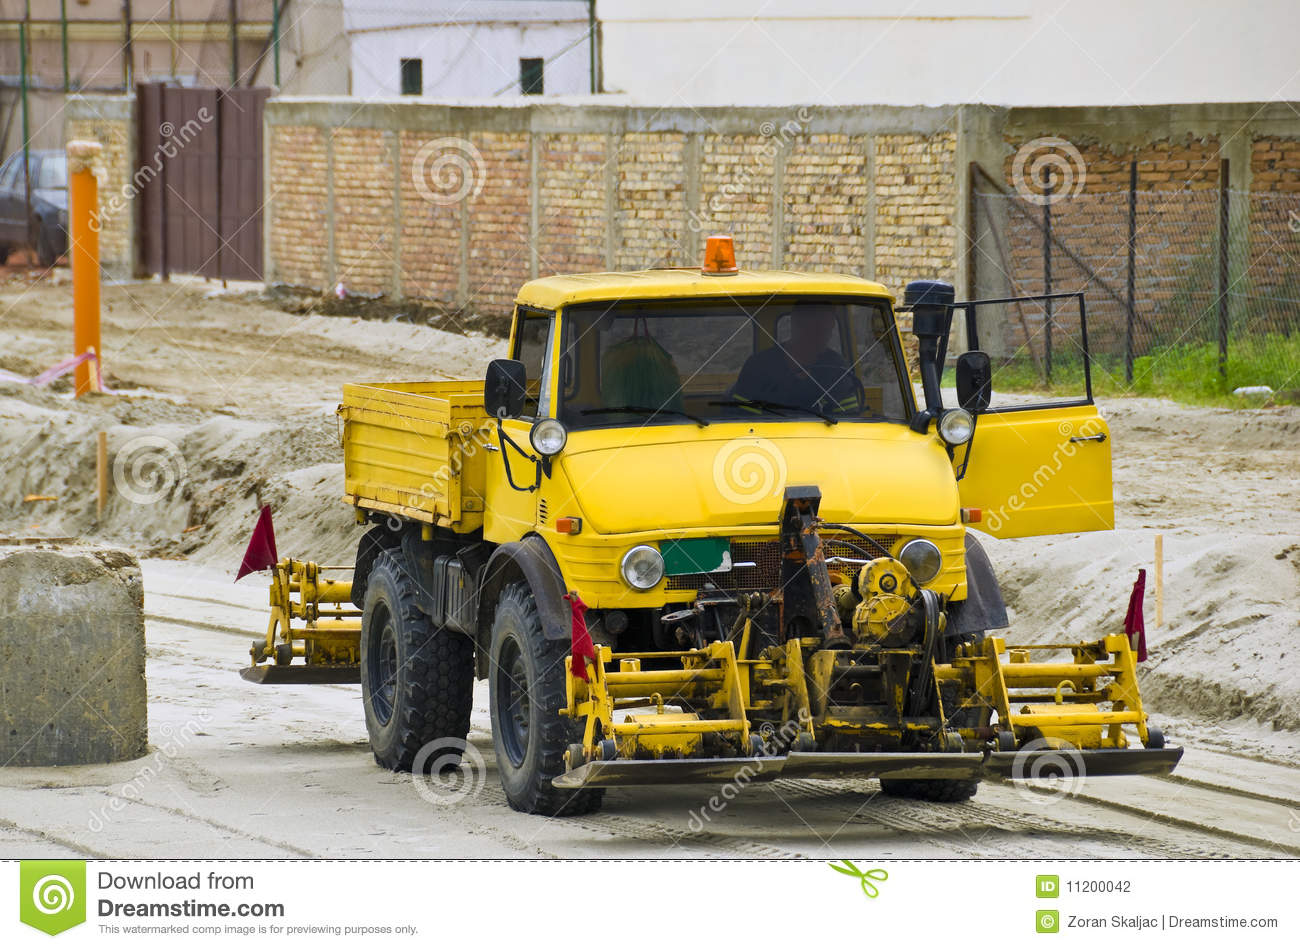 Road construction vehicle